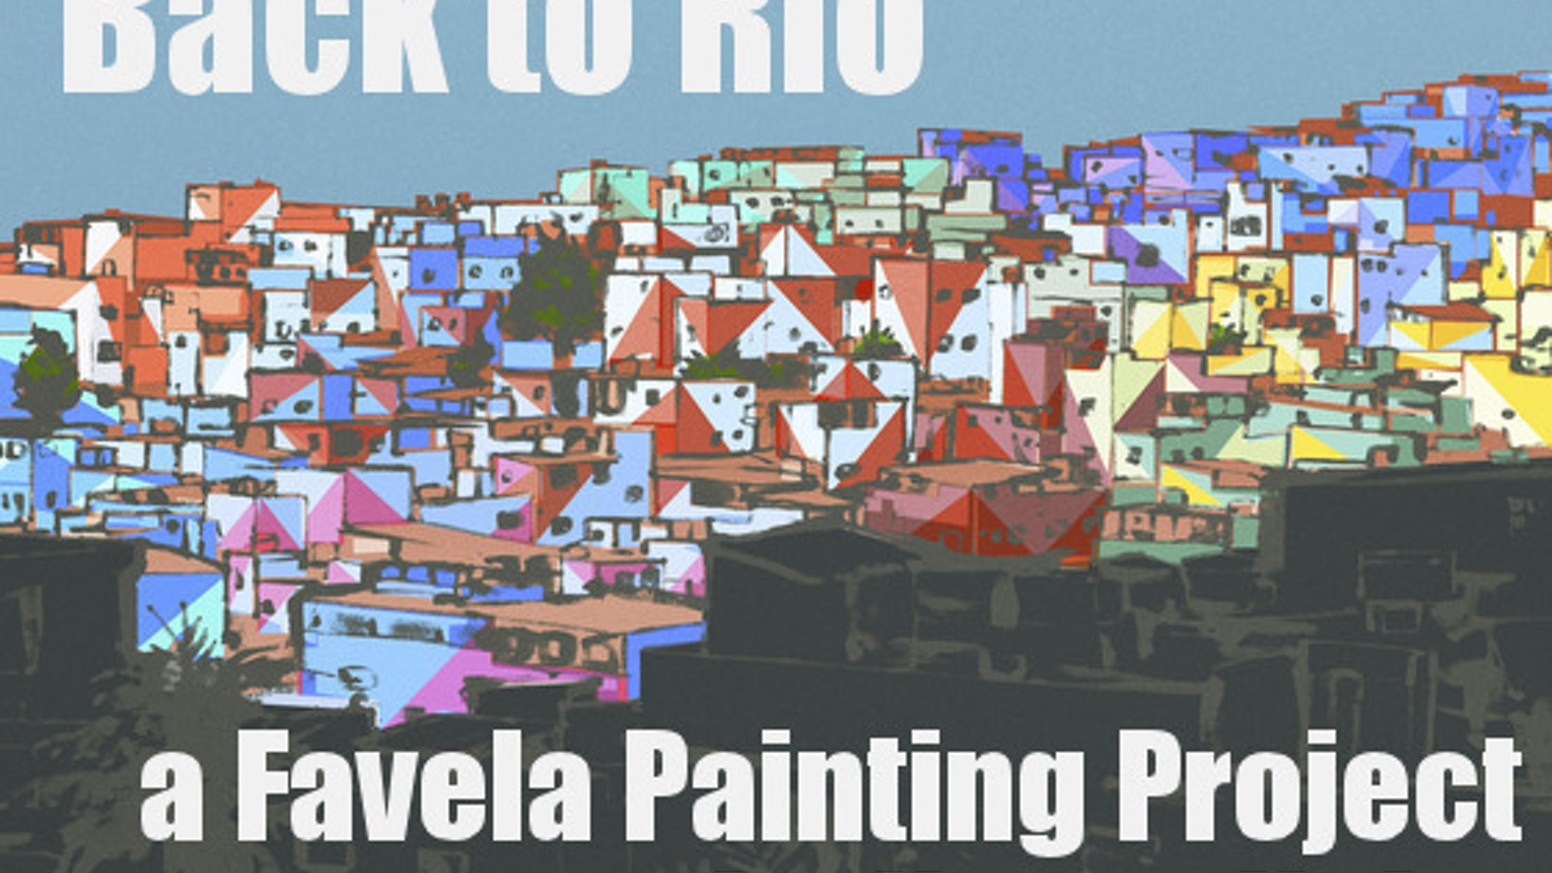 It's our dream to paint an entire favela in Rio de Janeiro!